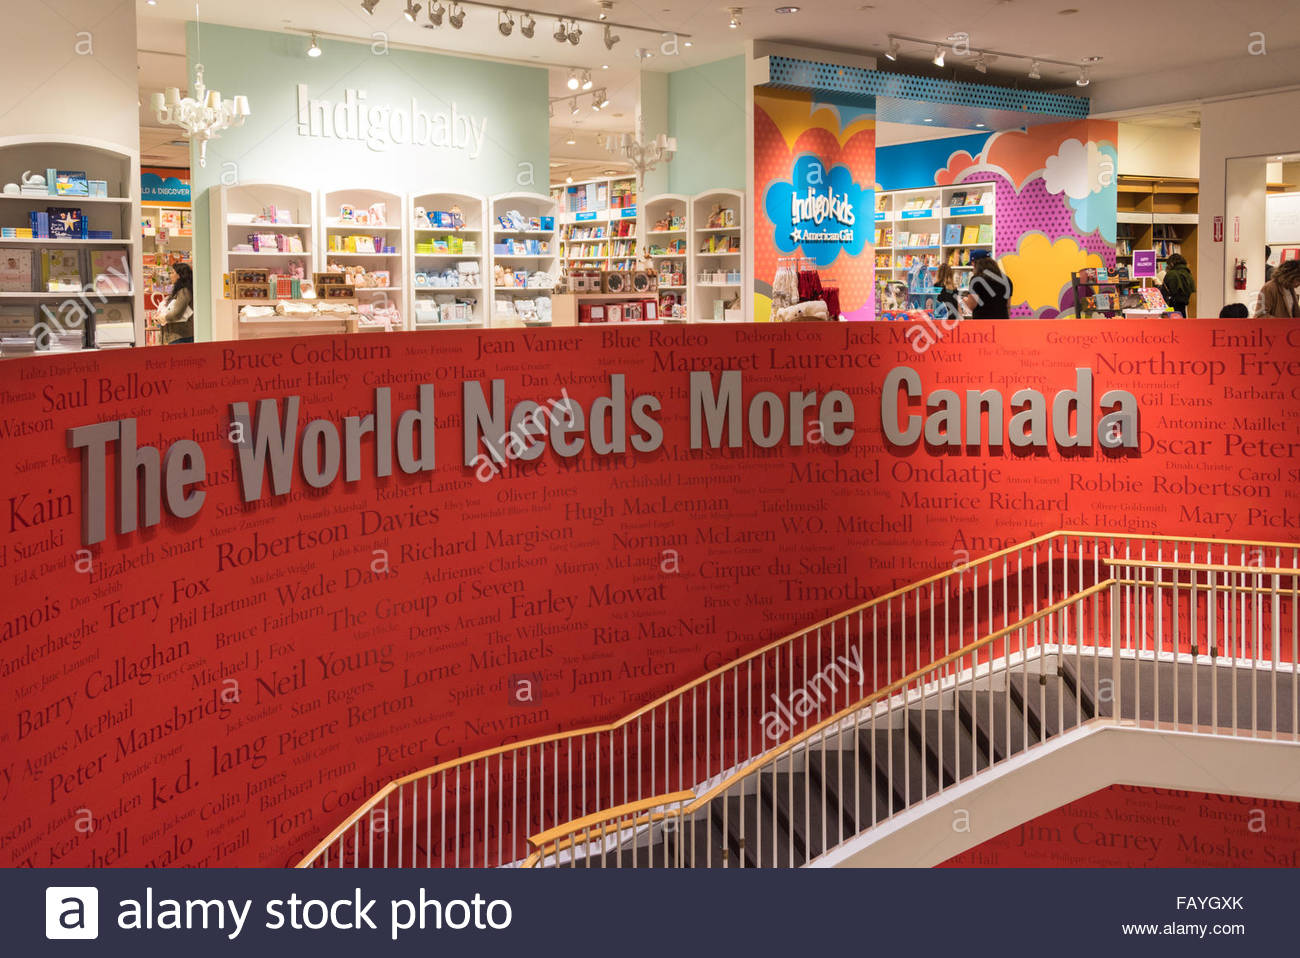 The World Needs More Canada is a catchphrase used at Chapters Bookstores, Canada's largest book retailer. Bring - Stock Image